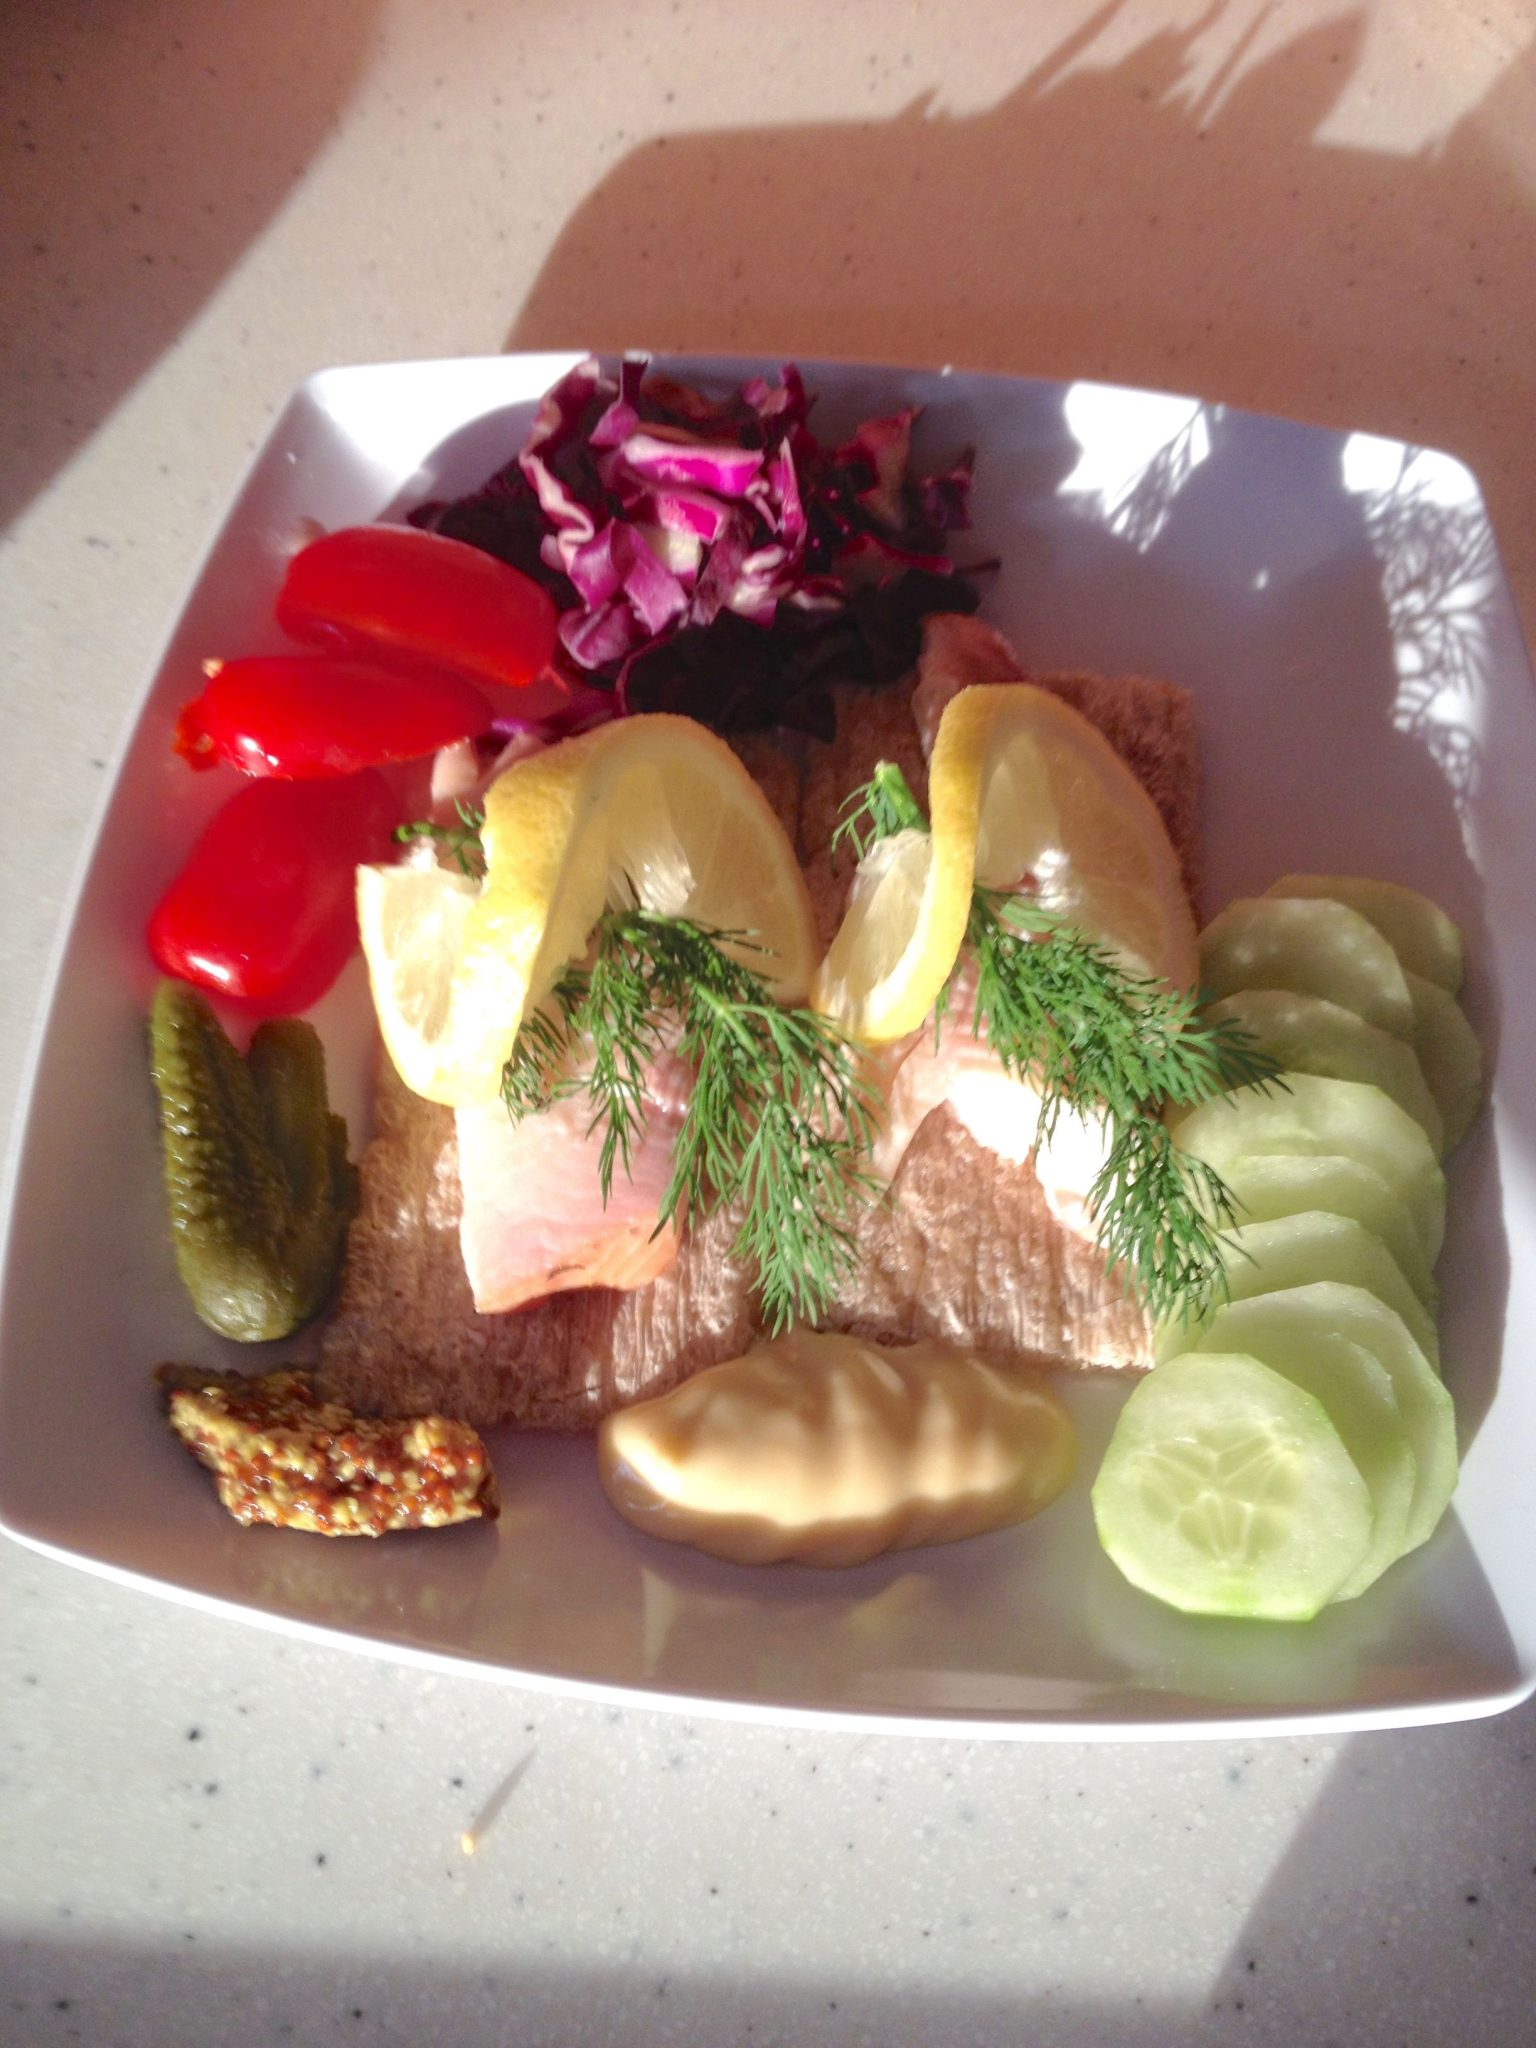 4. Sometimes I cooked salmon for dinner